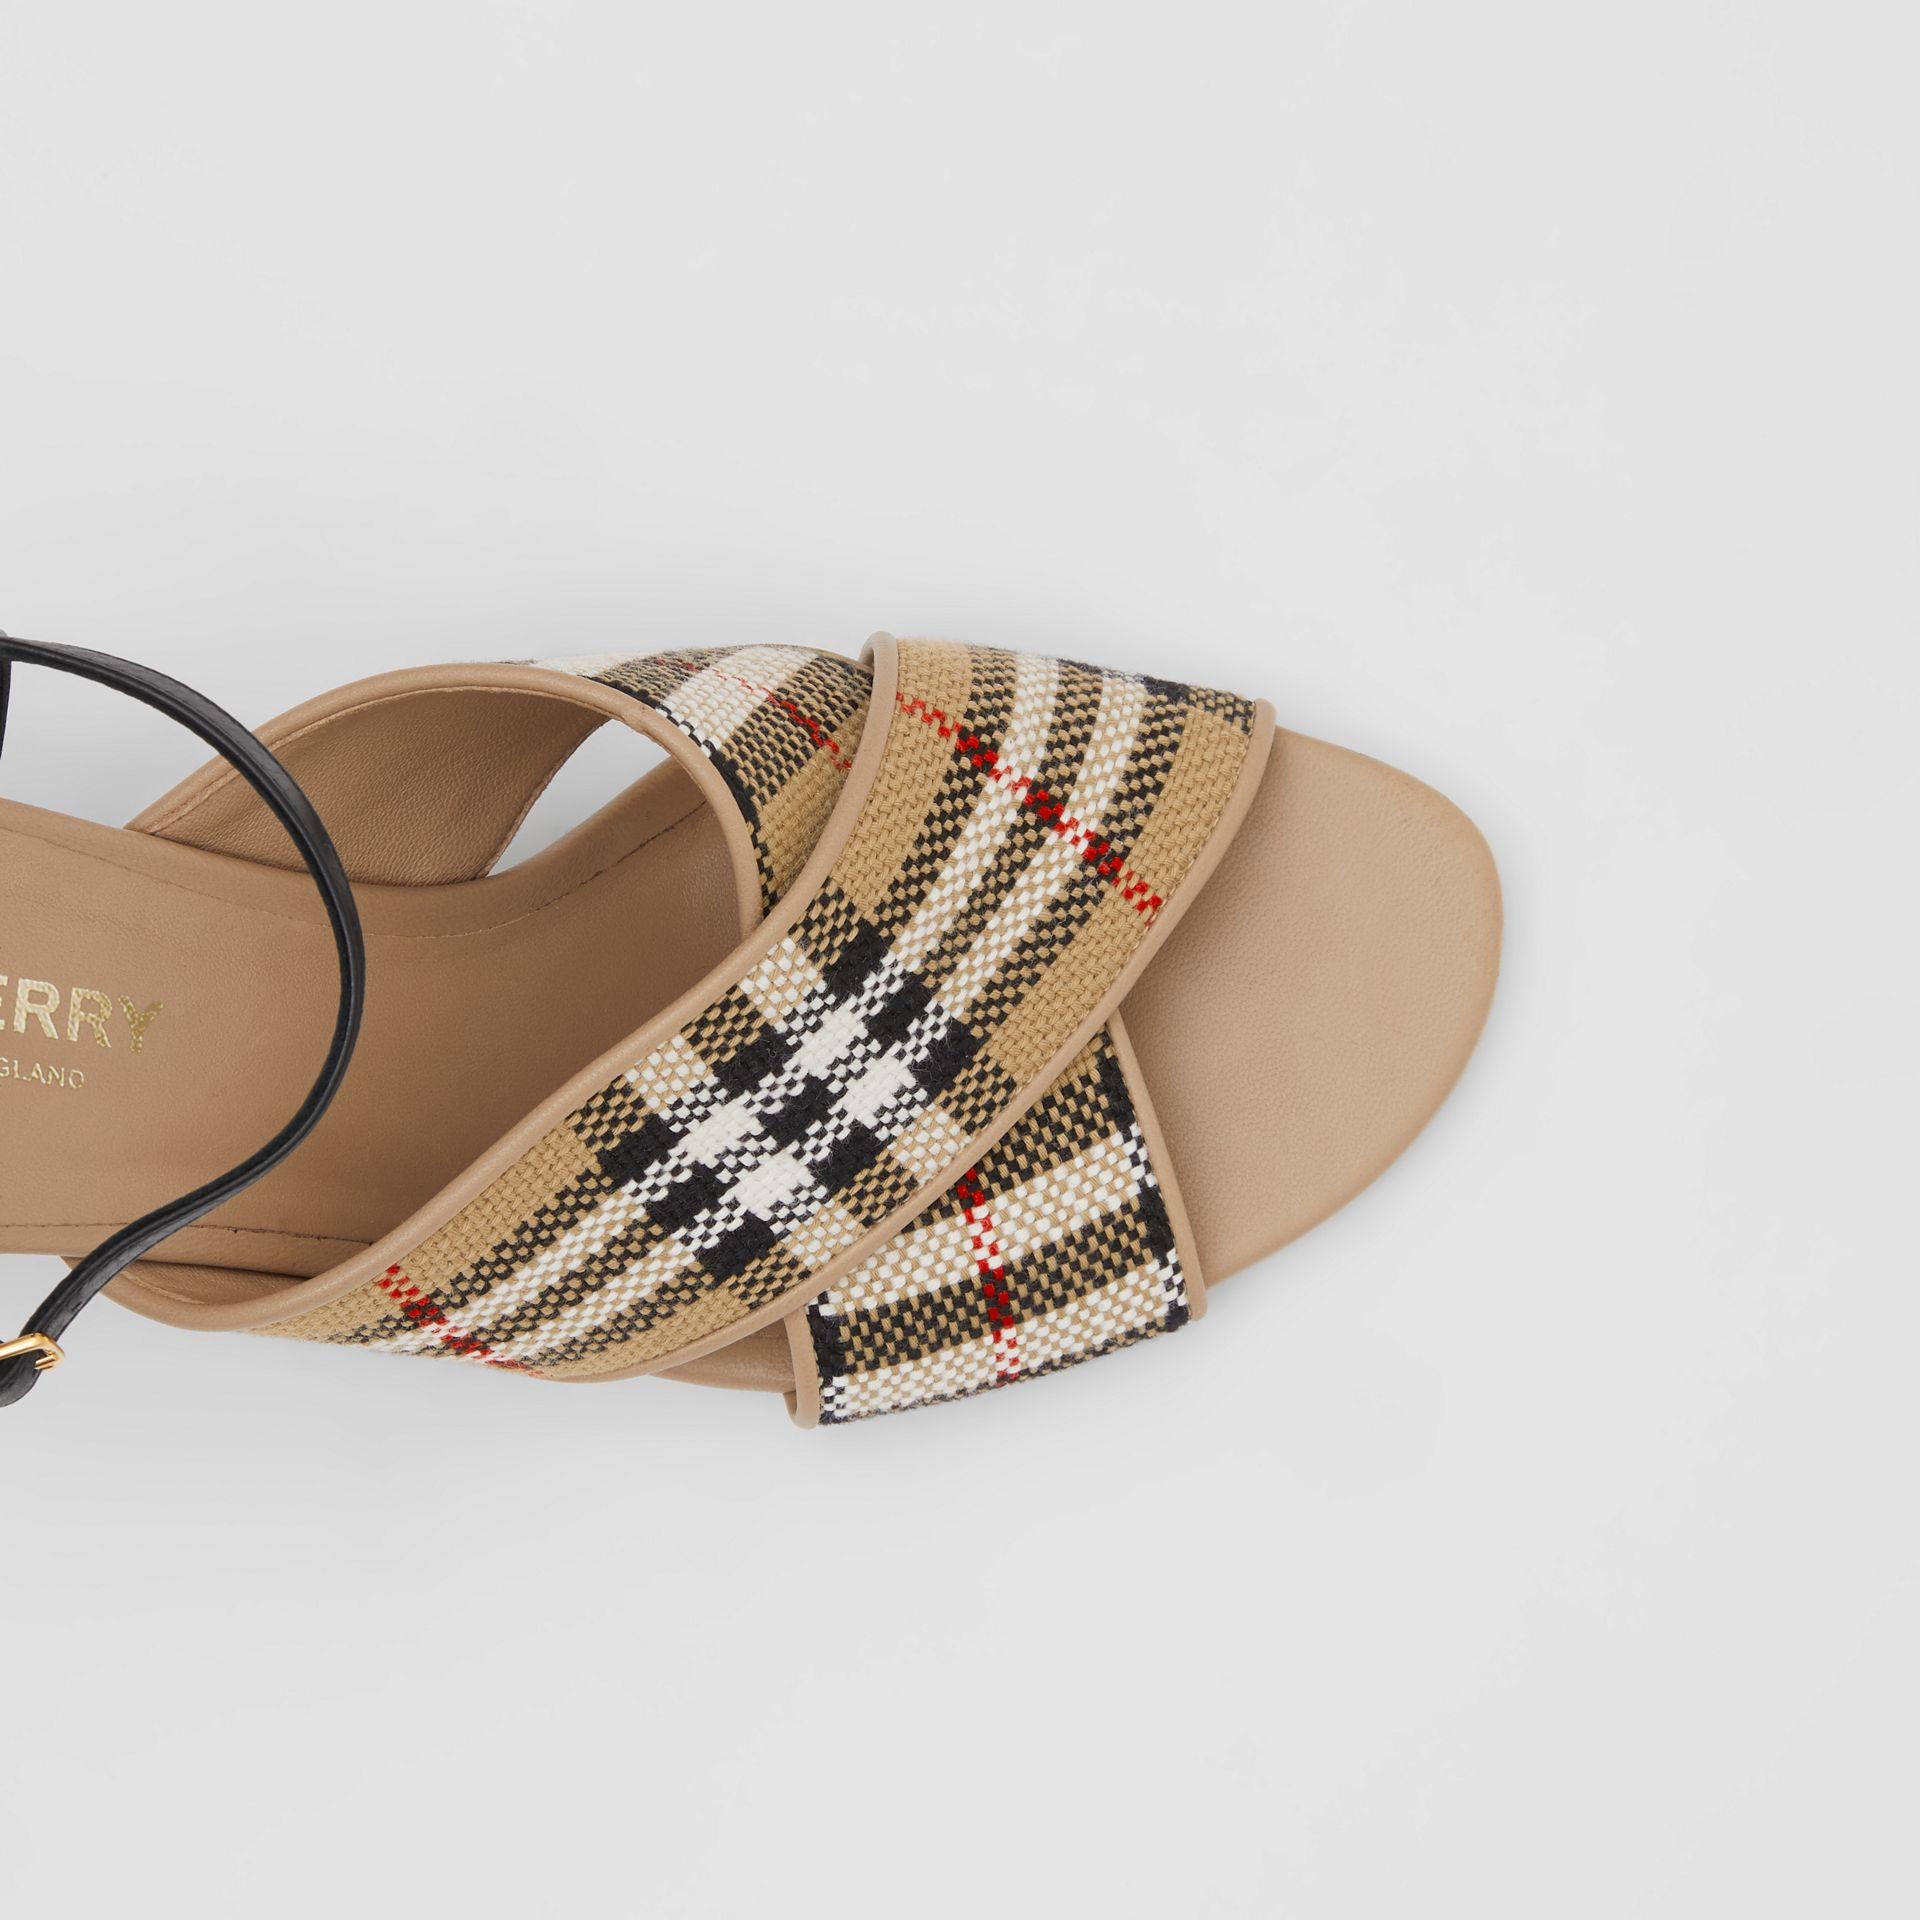 Latticed Cotton and Leather Block-heel Sandals in Archive Beige/black - Women | Burberry United Kingdom - gallery image 1